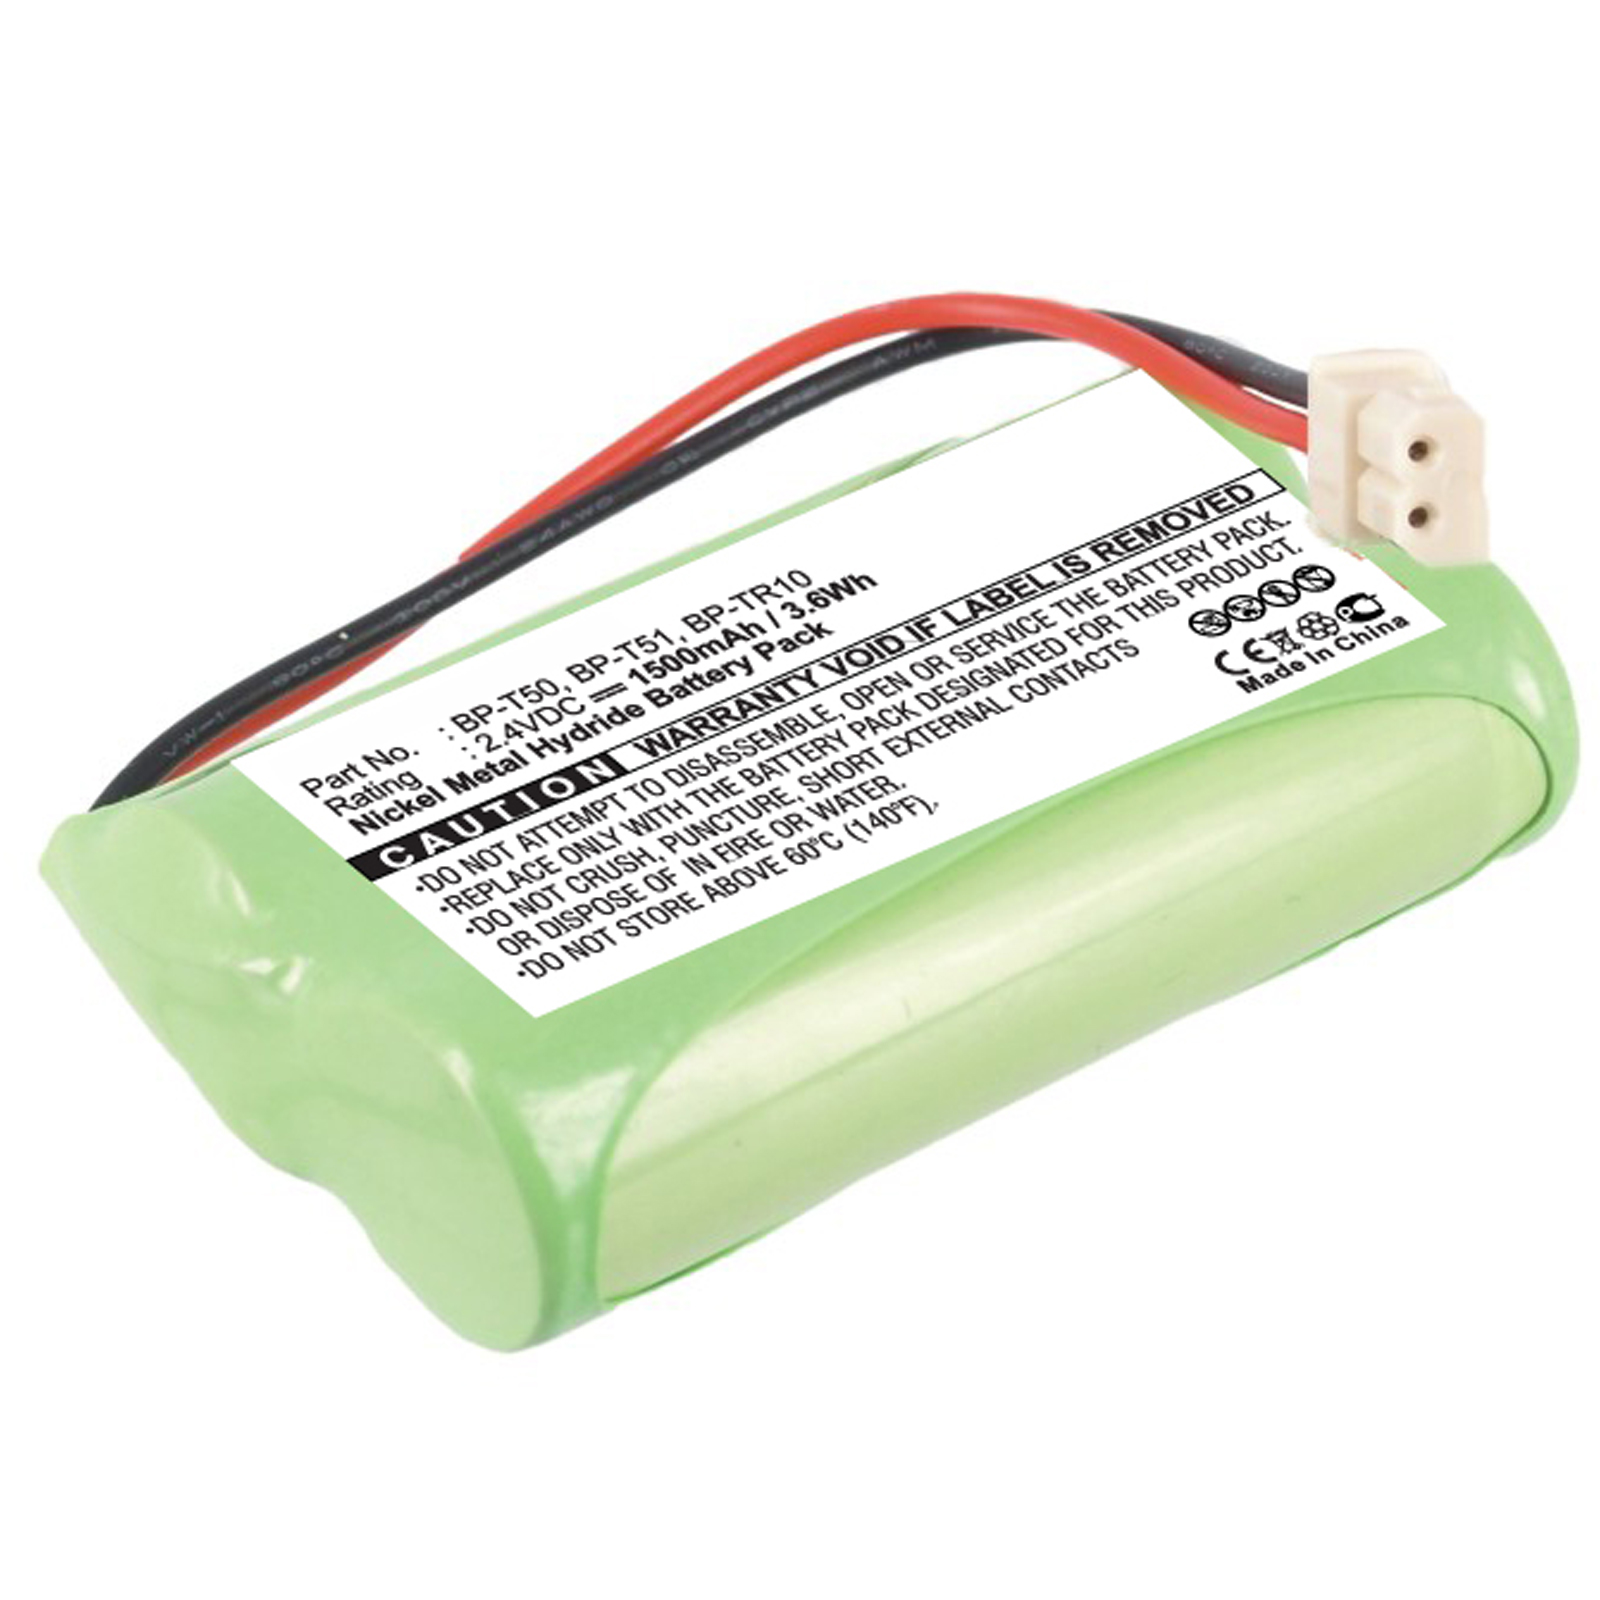 2.4V Baby Nursery Monitor Battery for Sony NTM-910YLW Replaces